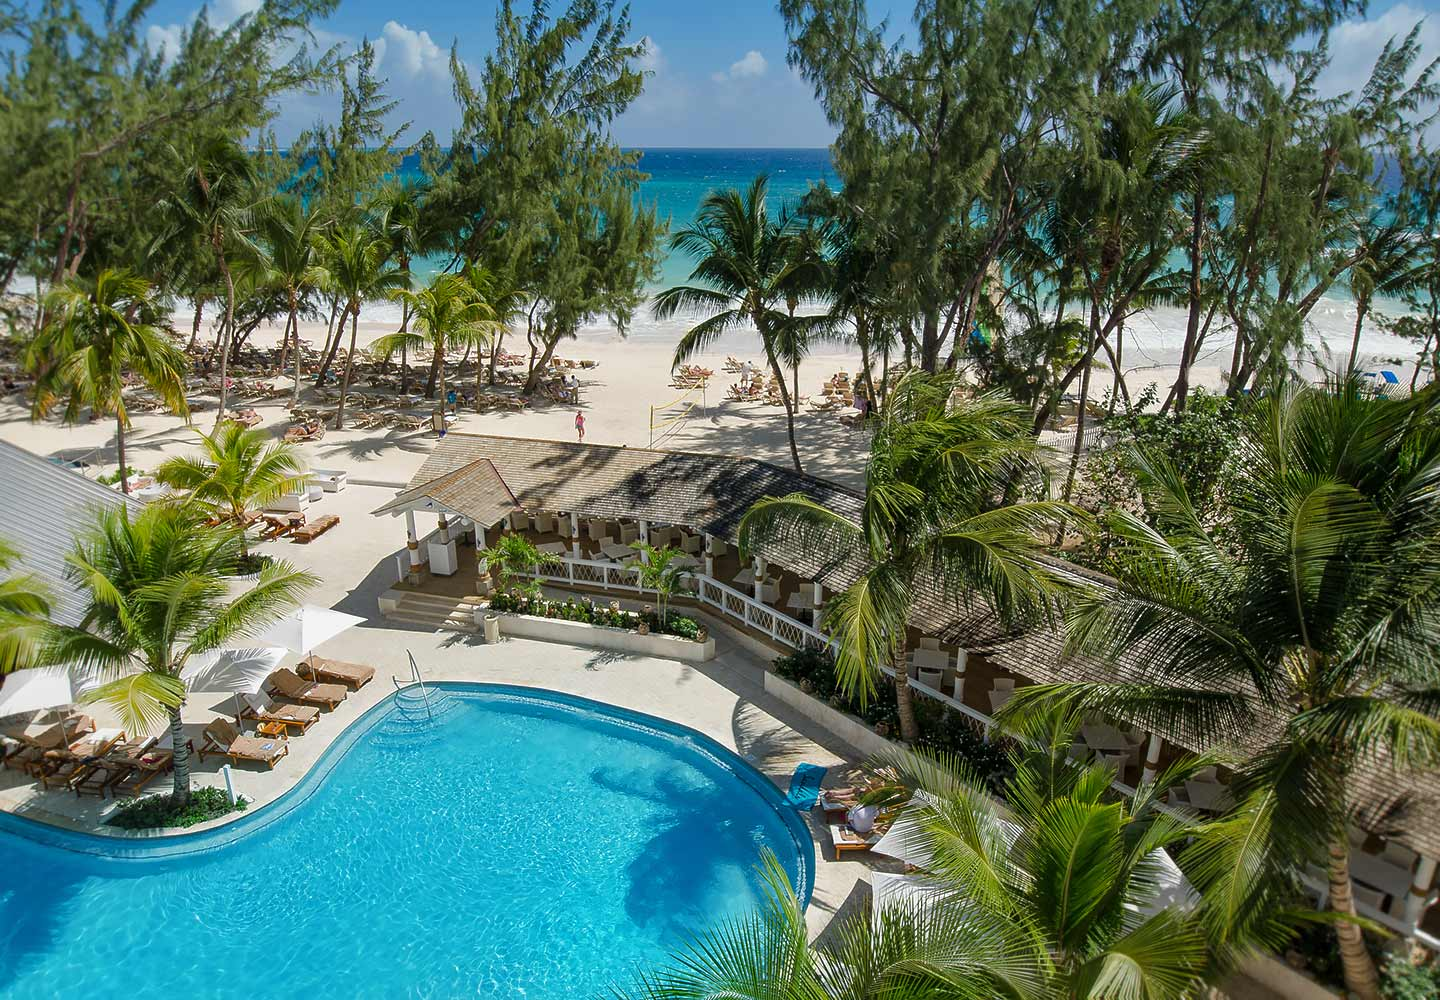 Sandals Barbados Reviews – 4 Star All Inclusive